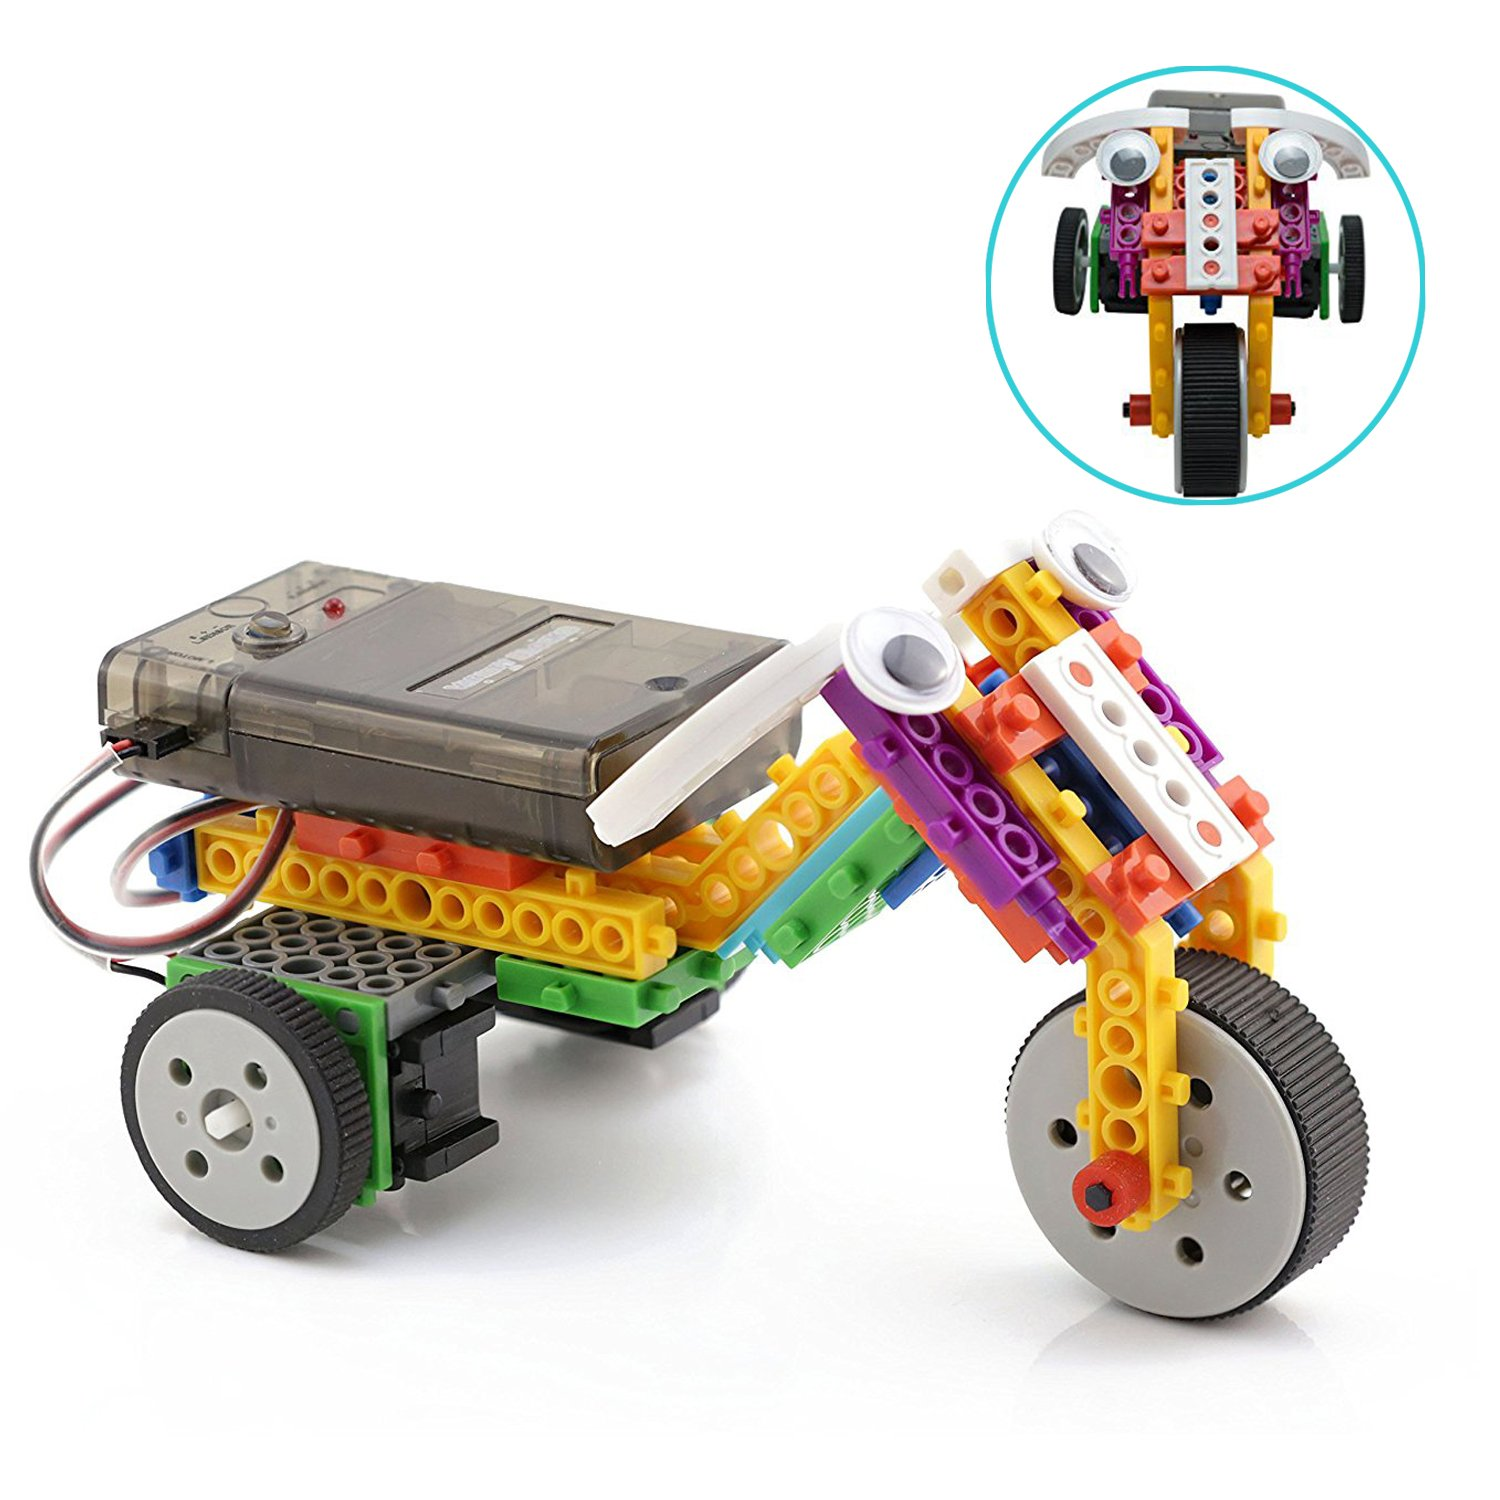 Boy Toys STEM Robot Kit Building Toys Remote Control Building Kits for Teen/Girl/Boy Gifts Building Blocks Construction Set Build Your Own RC Machines 123 Pieces by PACKGOUT (Image #2)